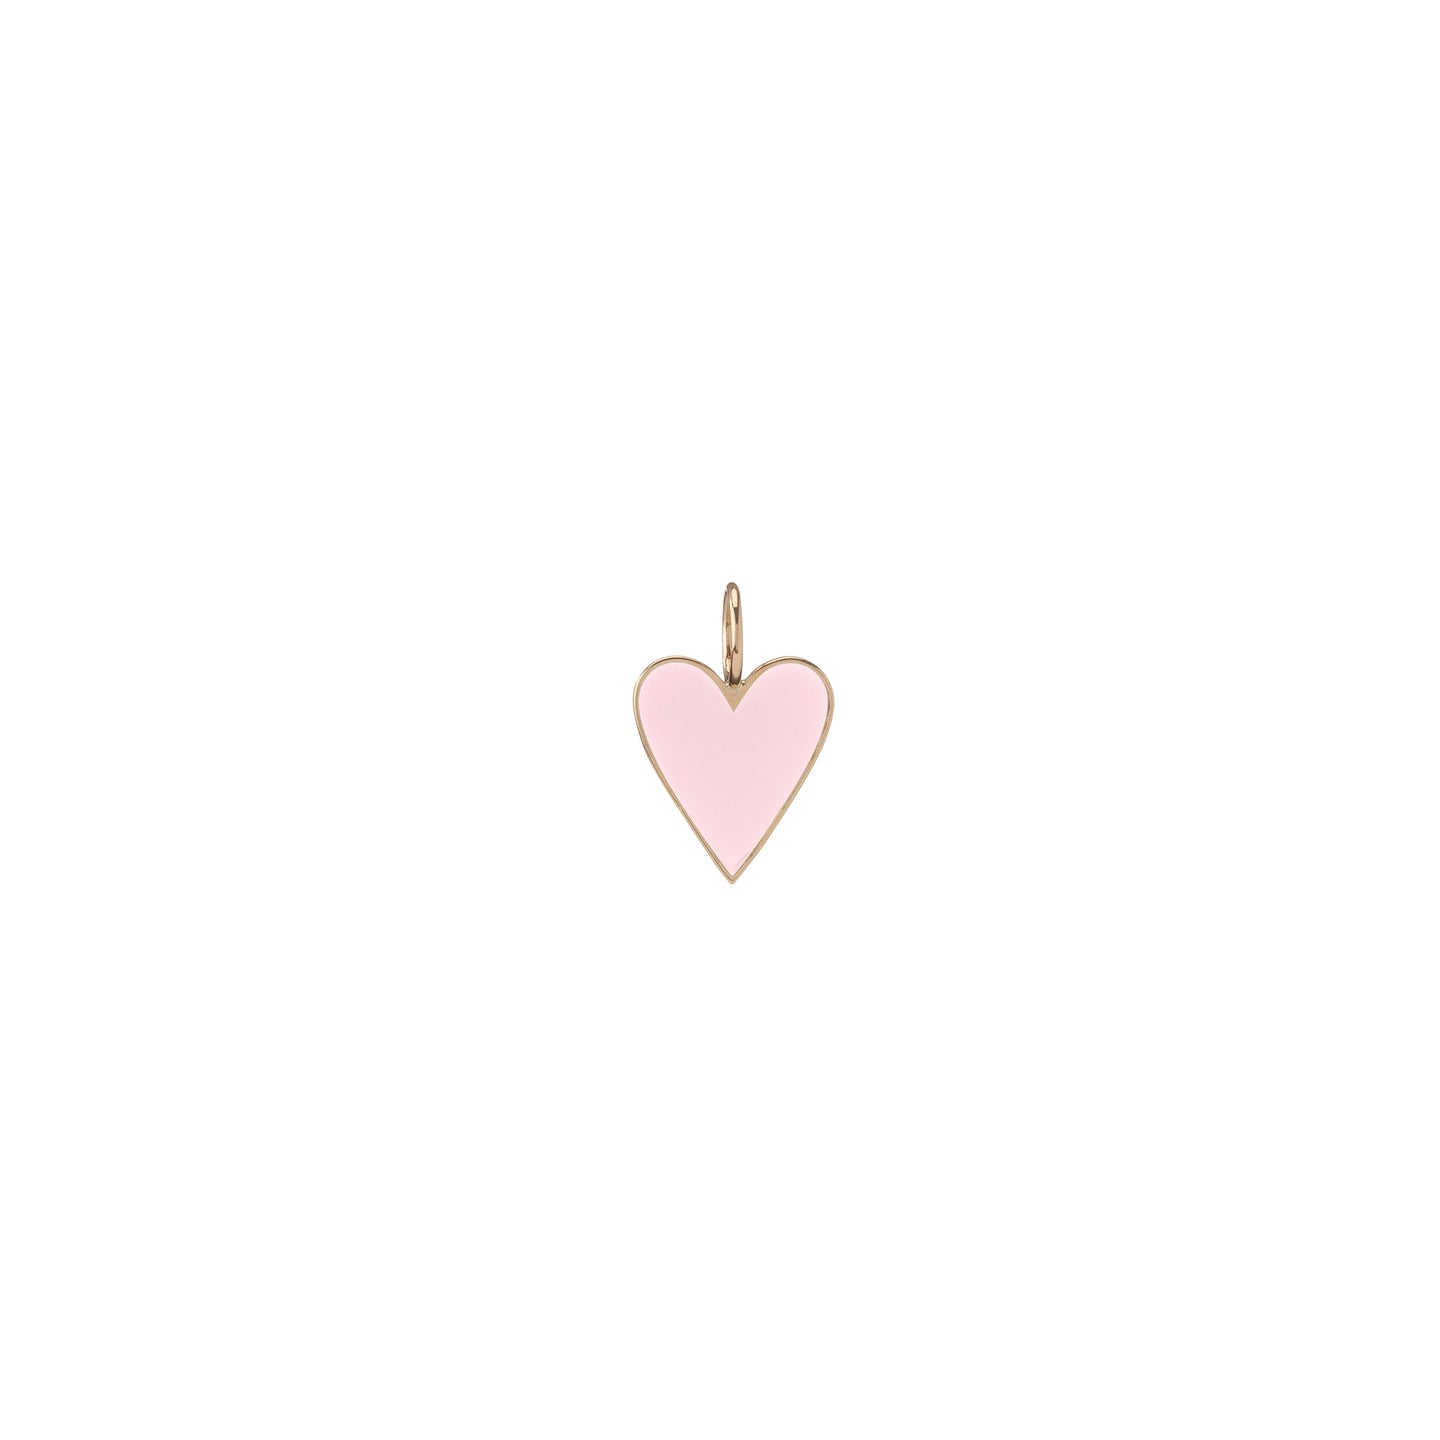 Medium Gold Border Enamel Heart